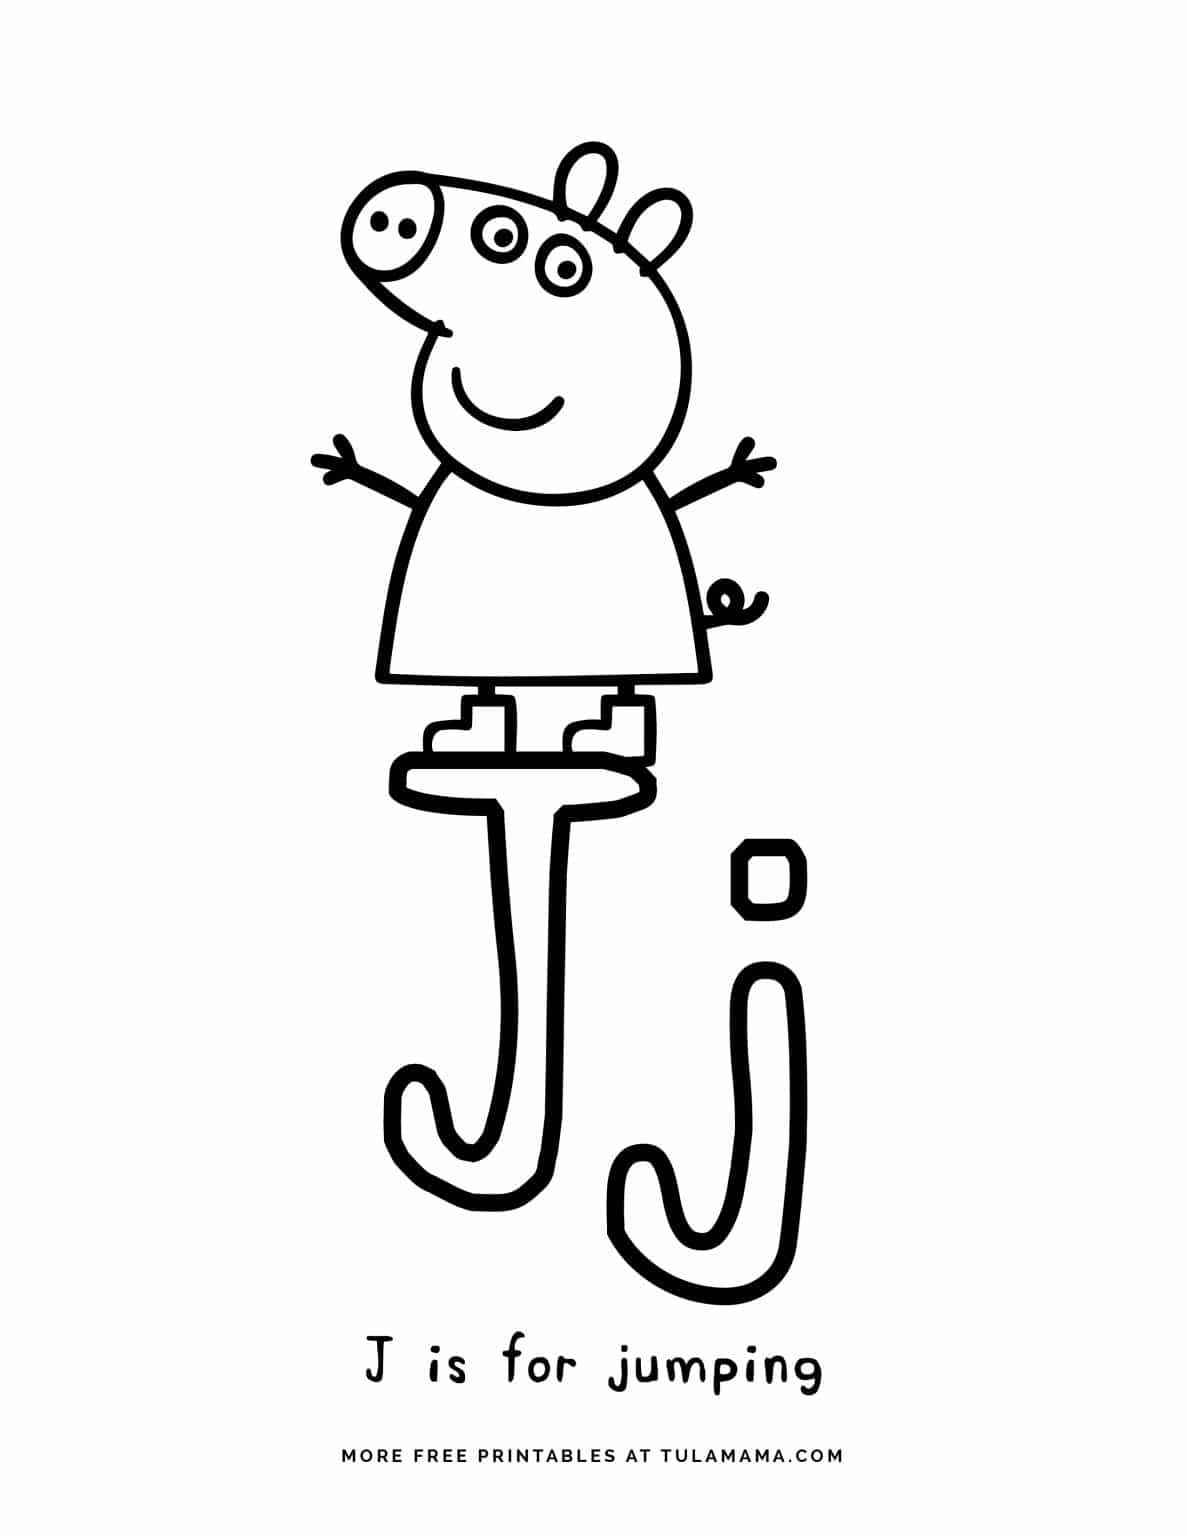 Free Printable Peppa Pig Abc Coloring Pages For Preschoolers Abc Coloring Abc Coloring Pages Free Alphabet Printables [ 1536 x 1187 Pixel ]